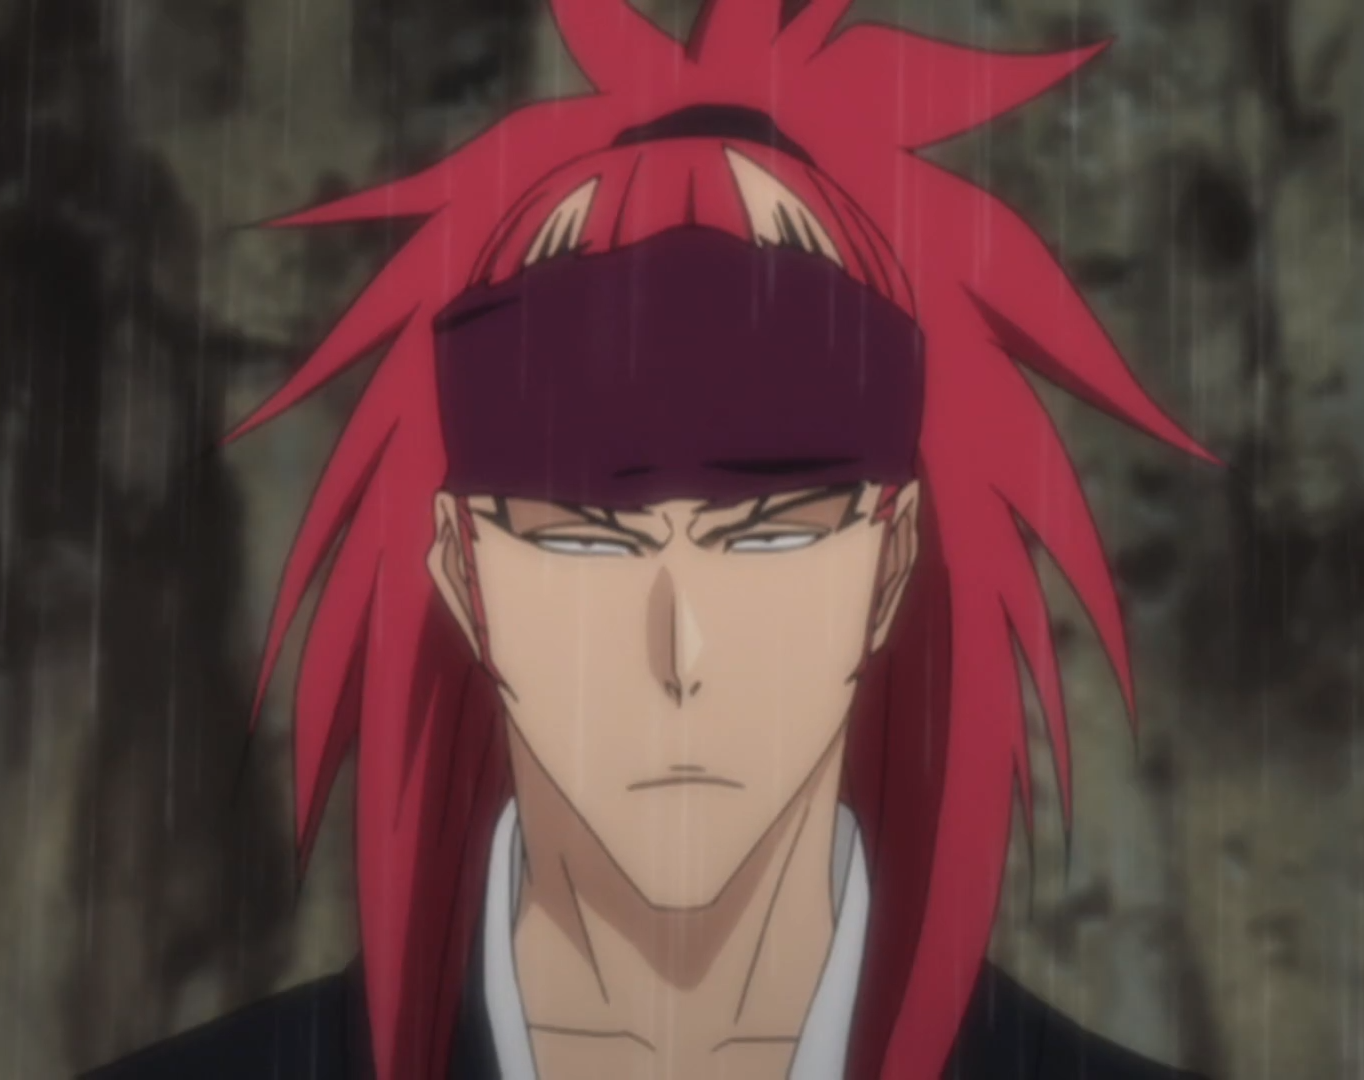 8d402e574 Renji Abarai | Bleach Wiki | FANDOM powered by Wikia